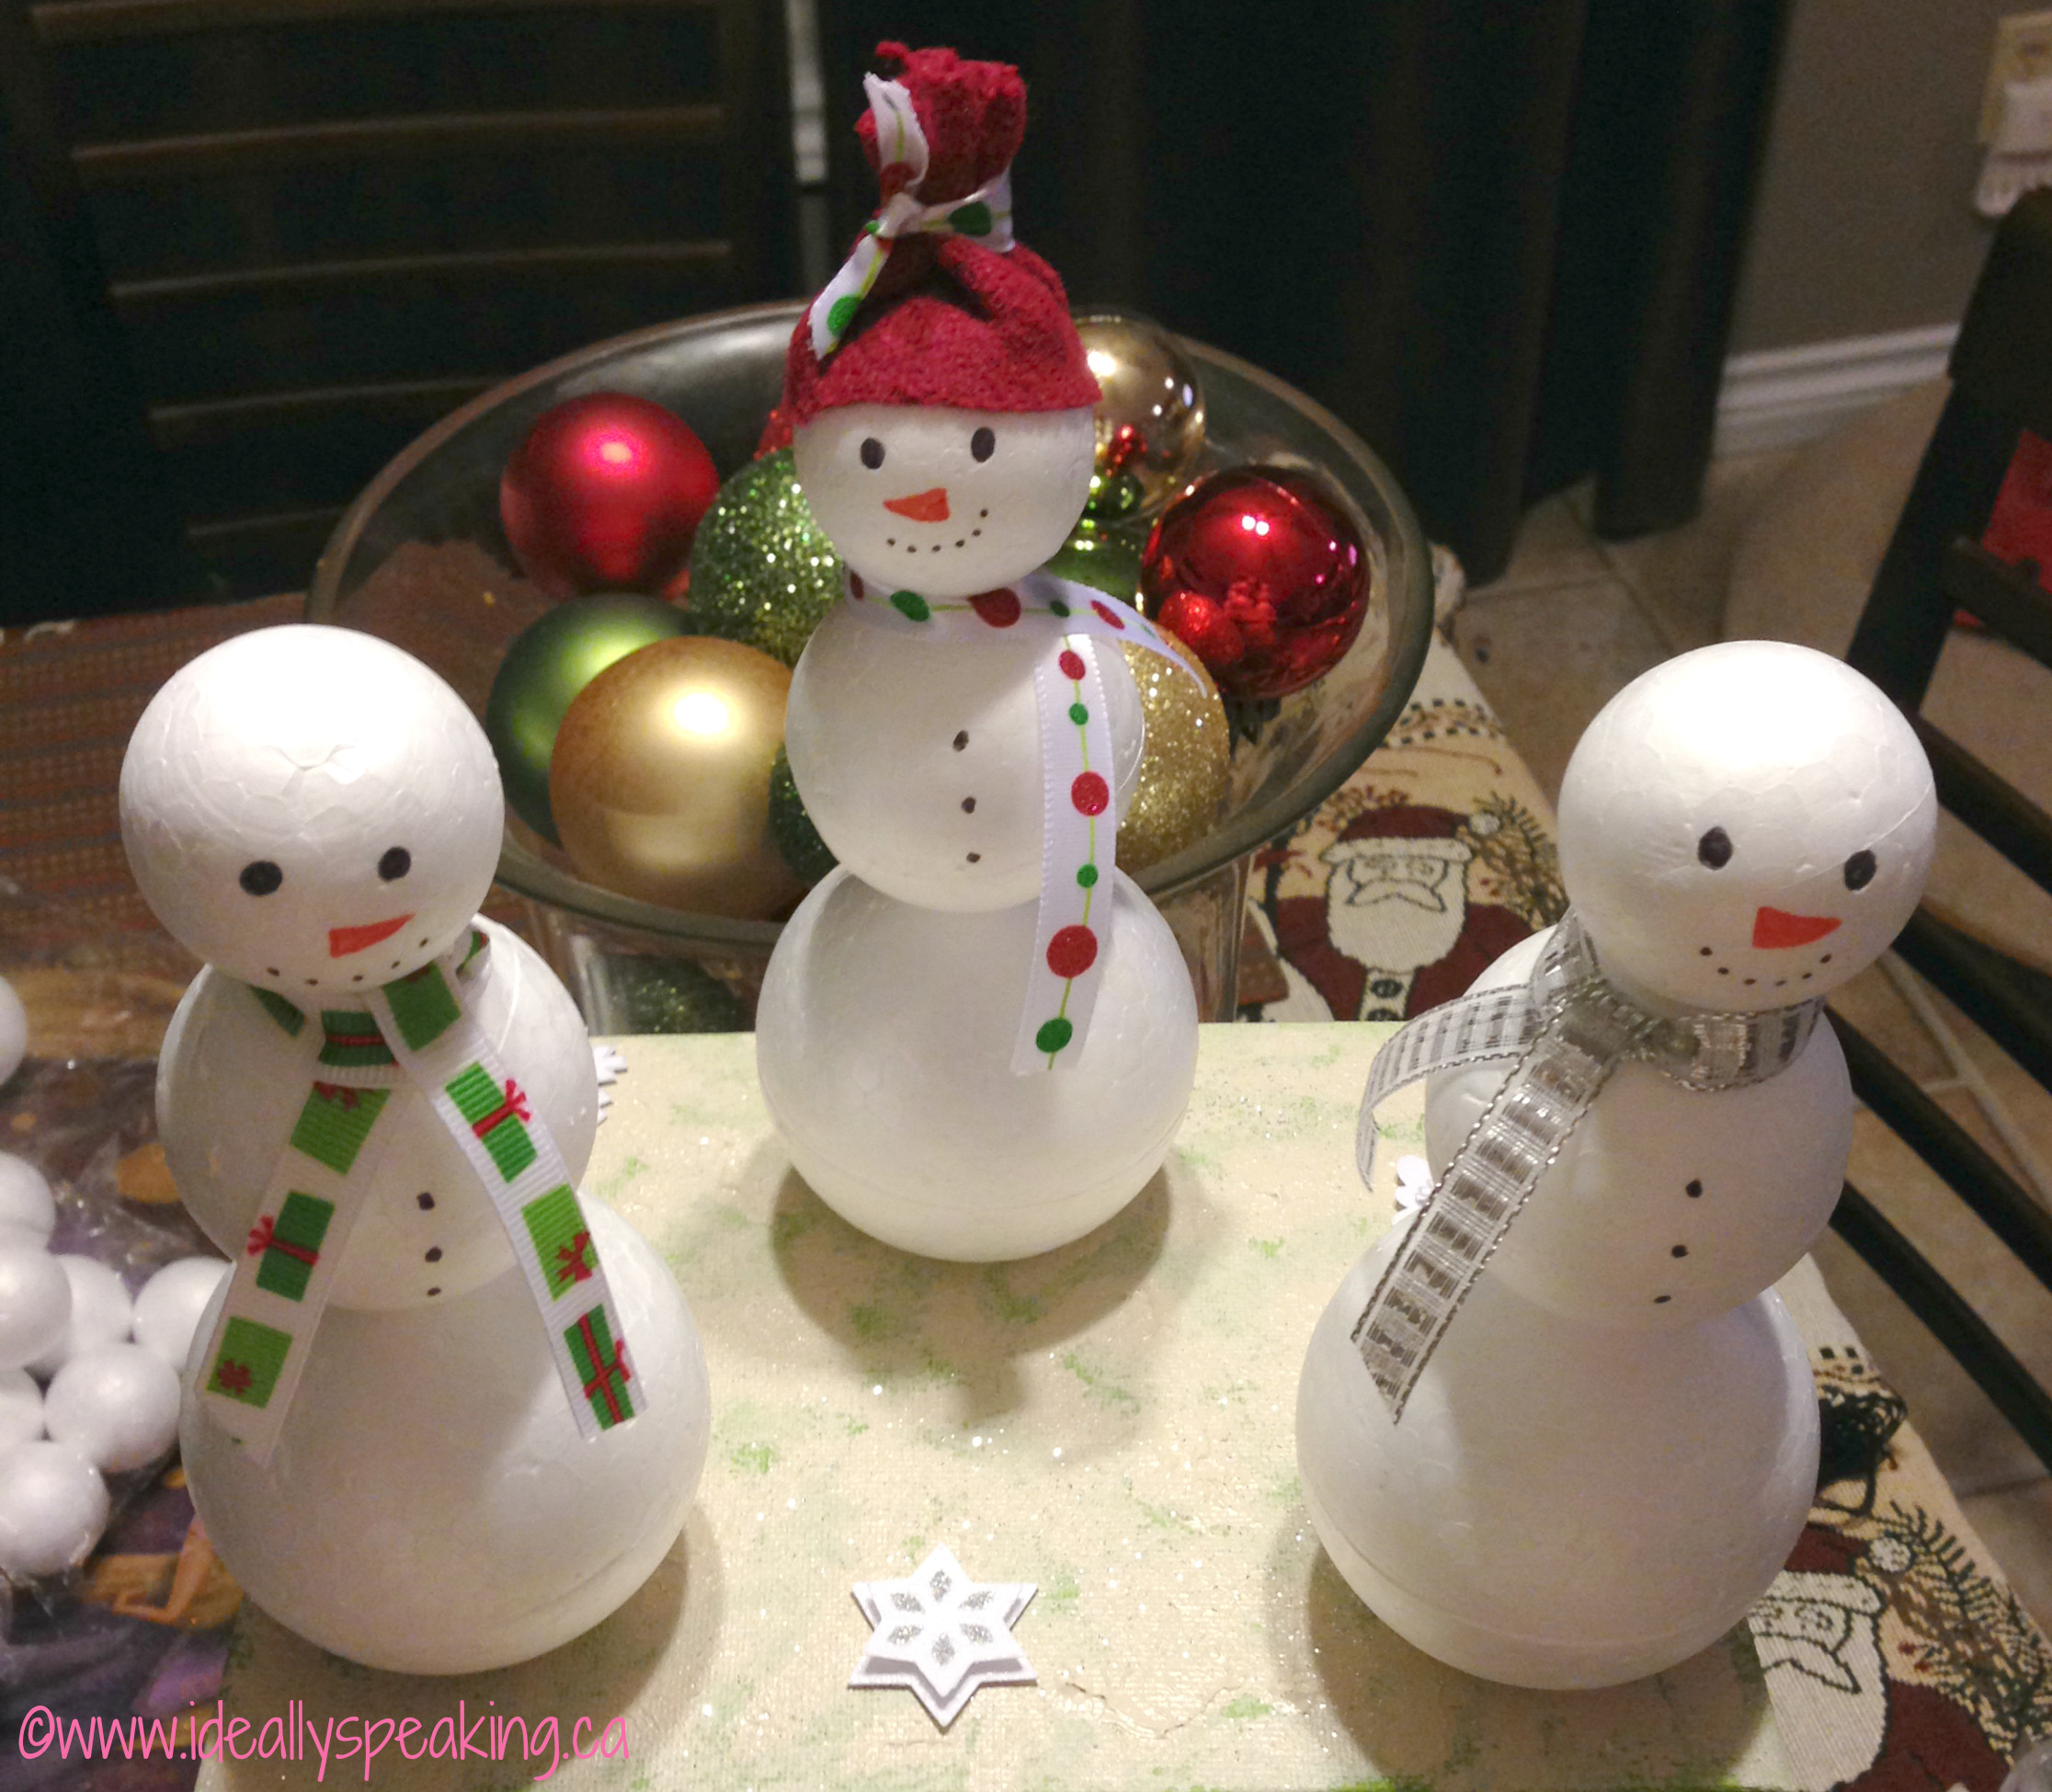 Best ideas about DIY Snowman Ornaments . Save or Pin PinterestHouseProject Christmas Edition Ideally Now.